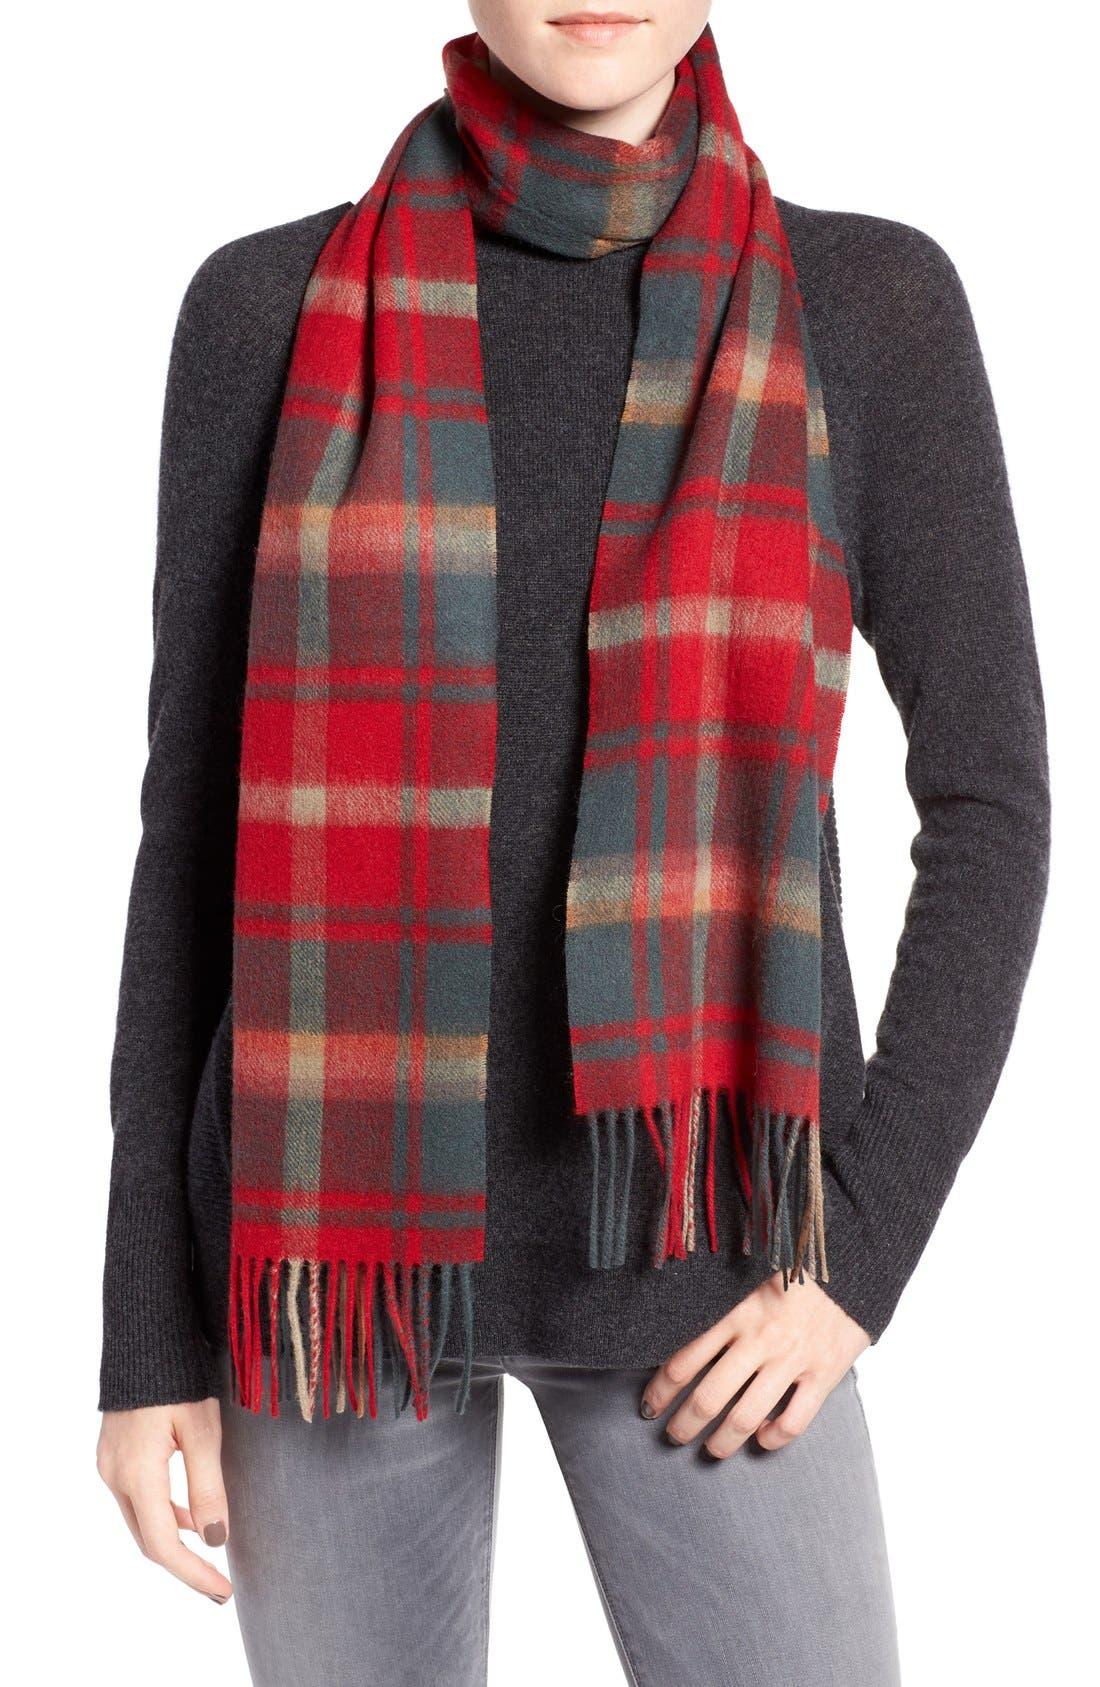 BARBOUR 'Shilhope' Plaid Wool Scarf, Main, color, 201